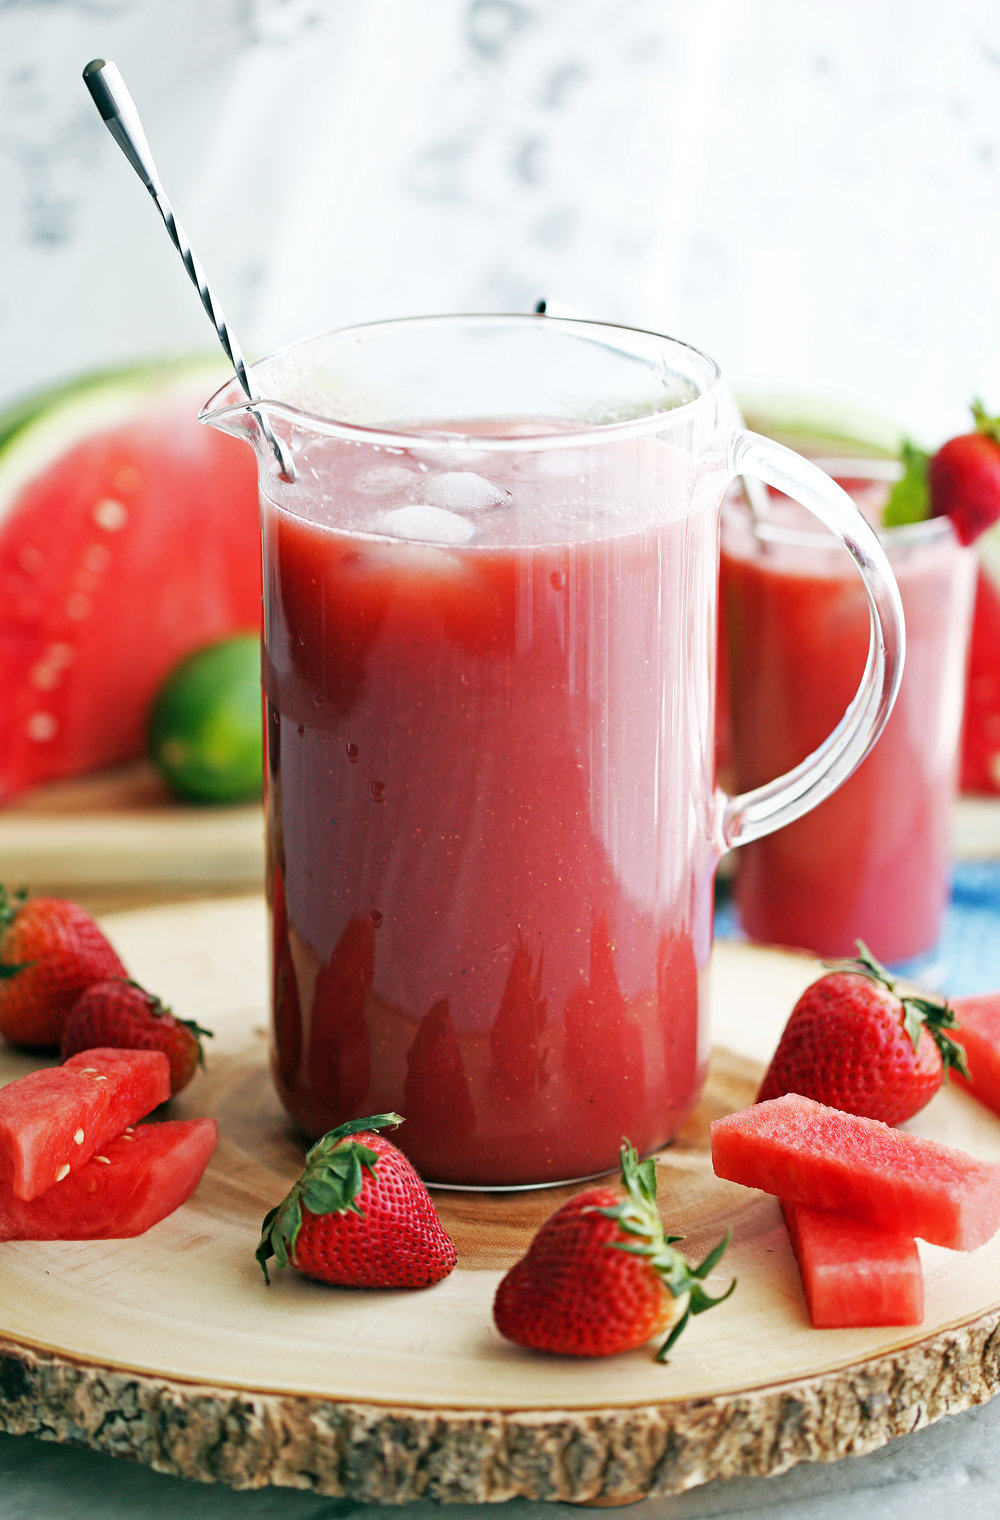 A glass pitcher full of Fresh Watermelon Strawberry Soda that's surrounded by fresh strawberries and watermelon pieces.